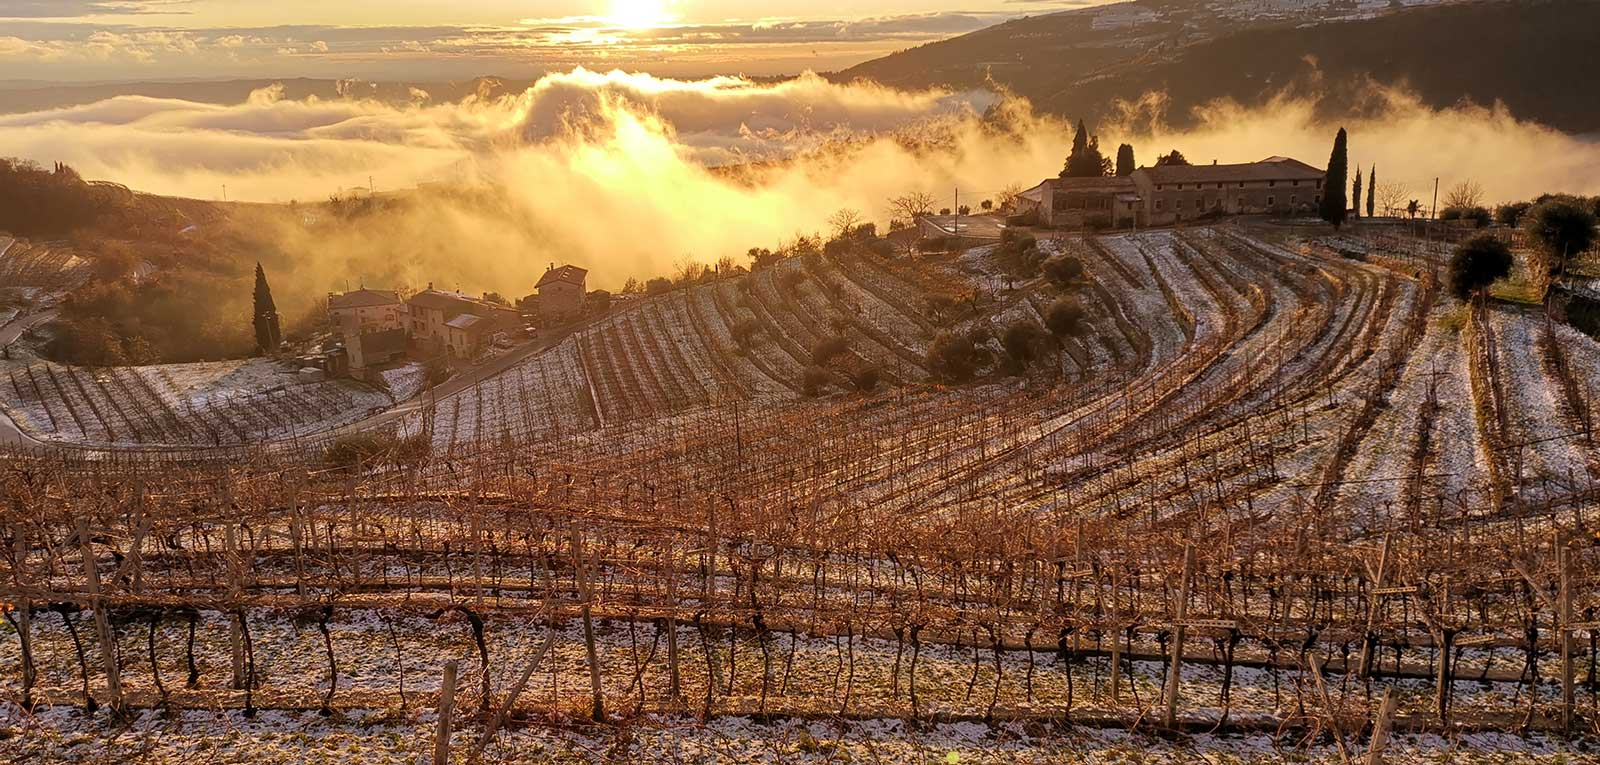 Valpolicella in winter, when the cold air dissects grapes set aside for Amarone della Valpolicella production.